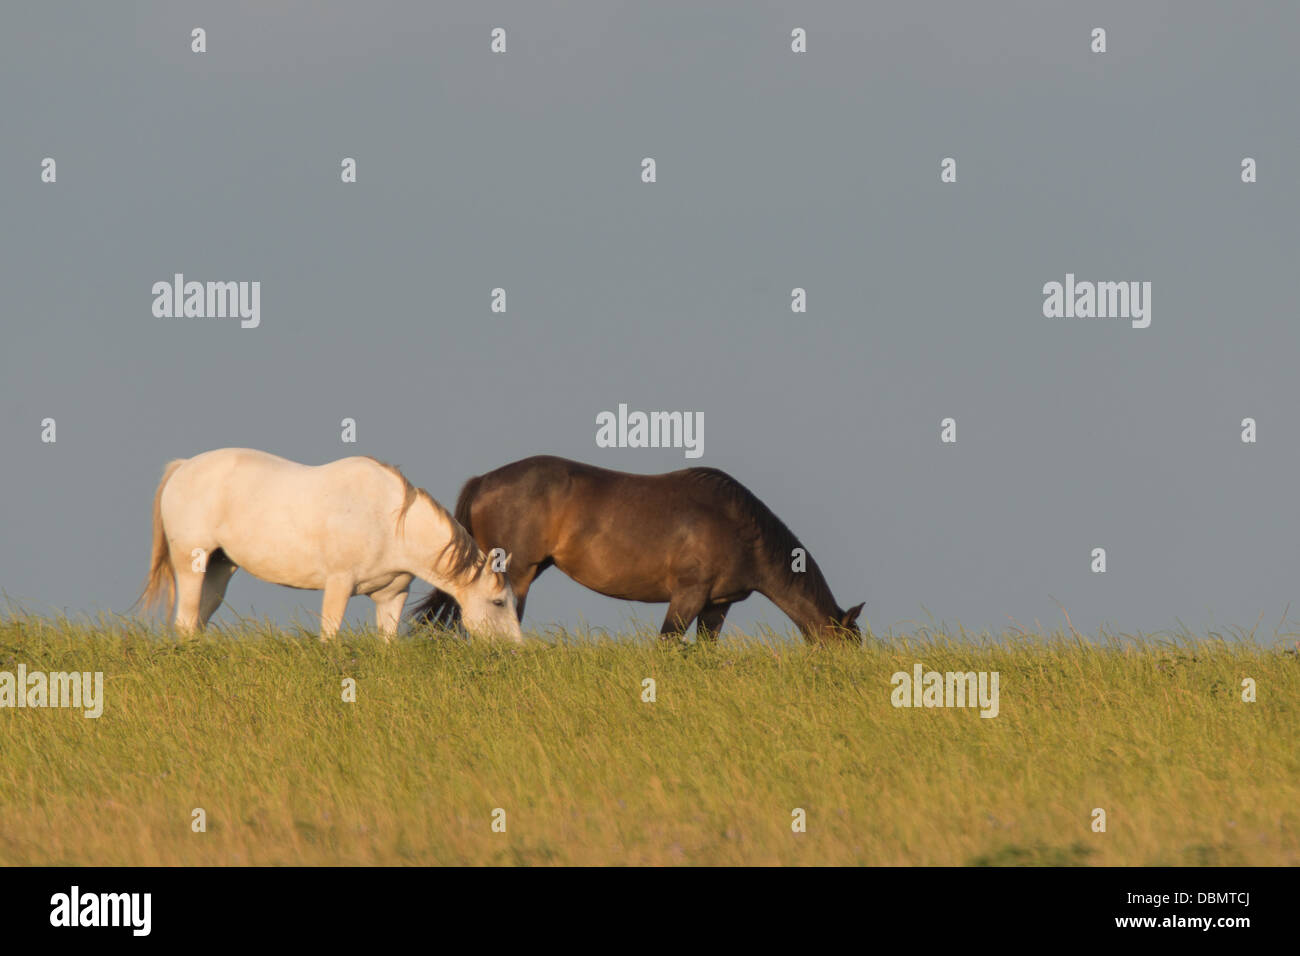 A brown and a white horse eating grass - Stock Image